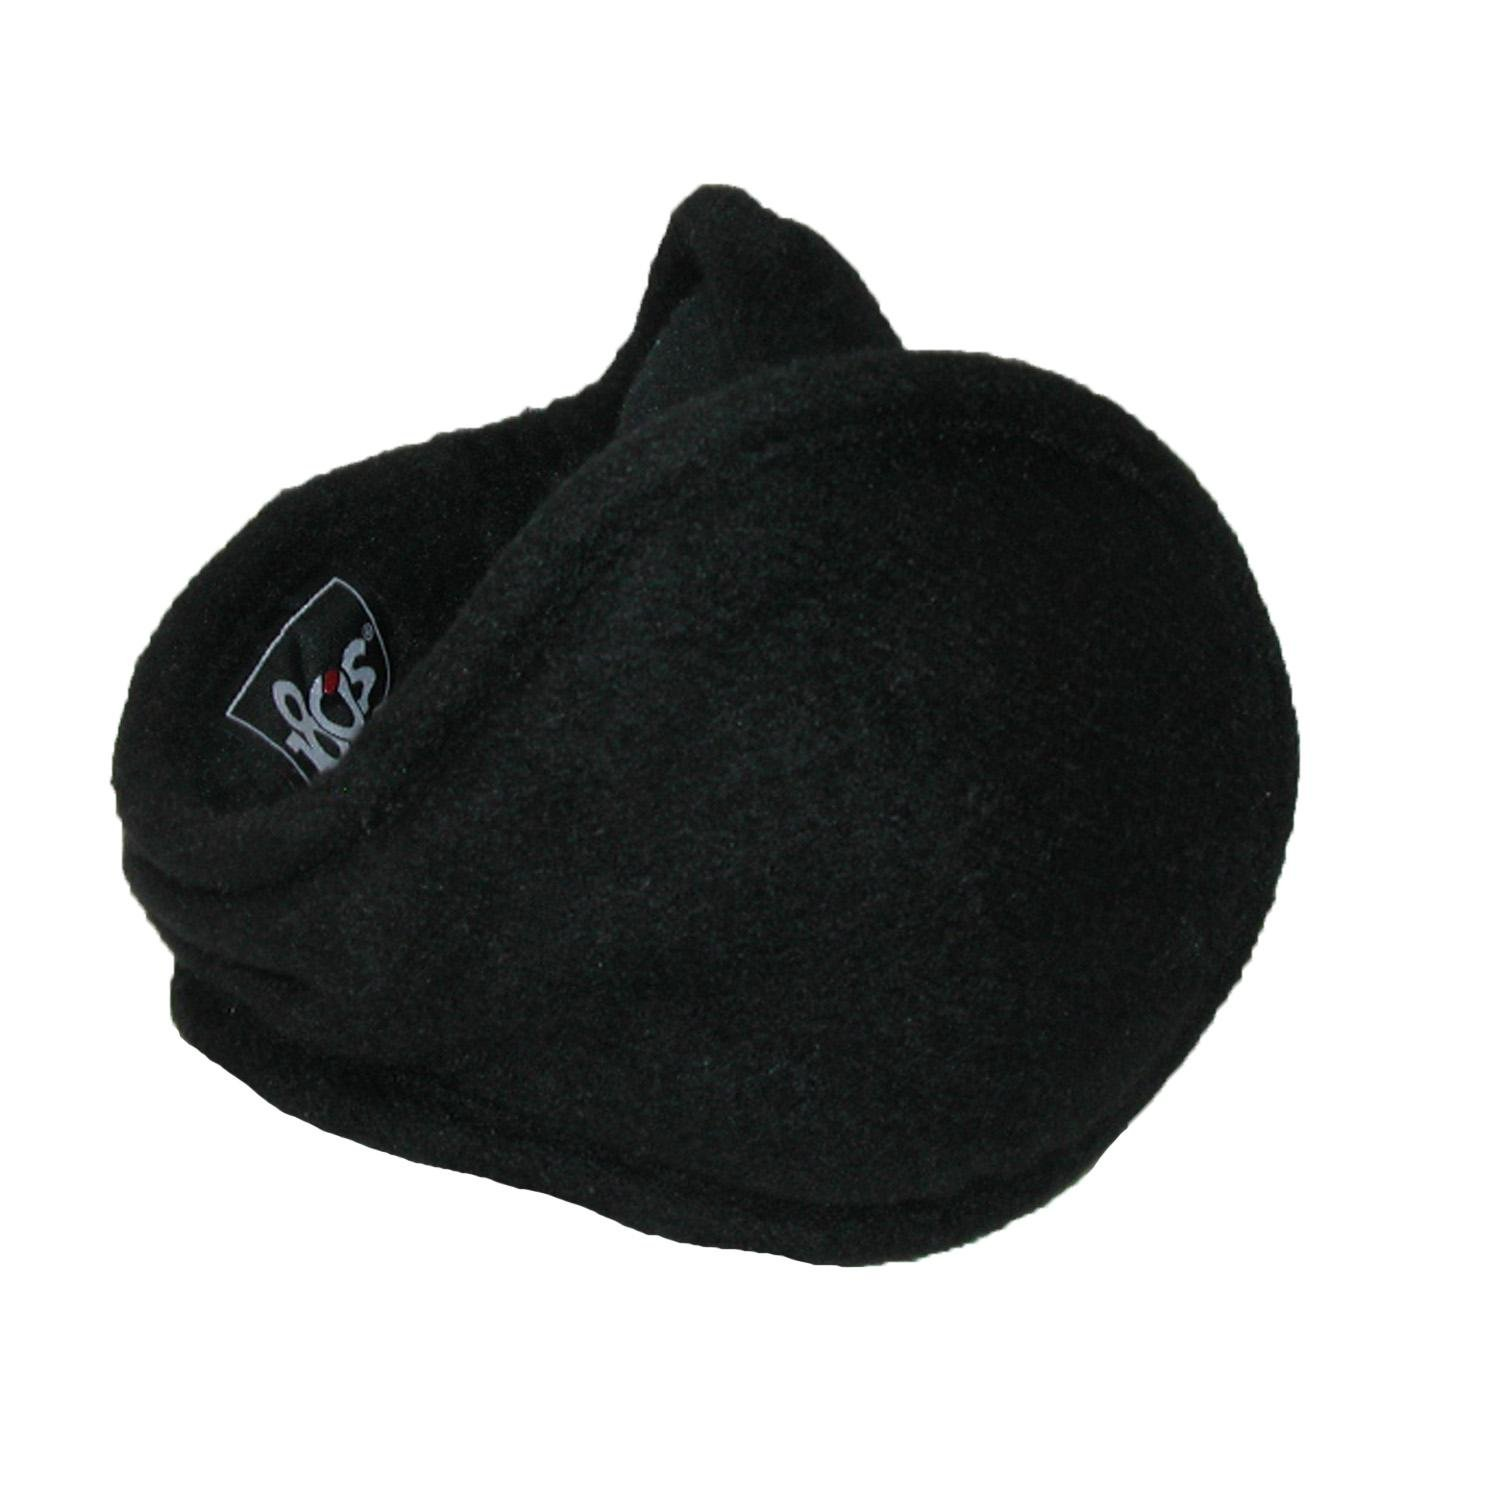 180s Chesterfield Wool Wrap Around Earmuffs, Black